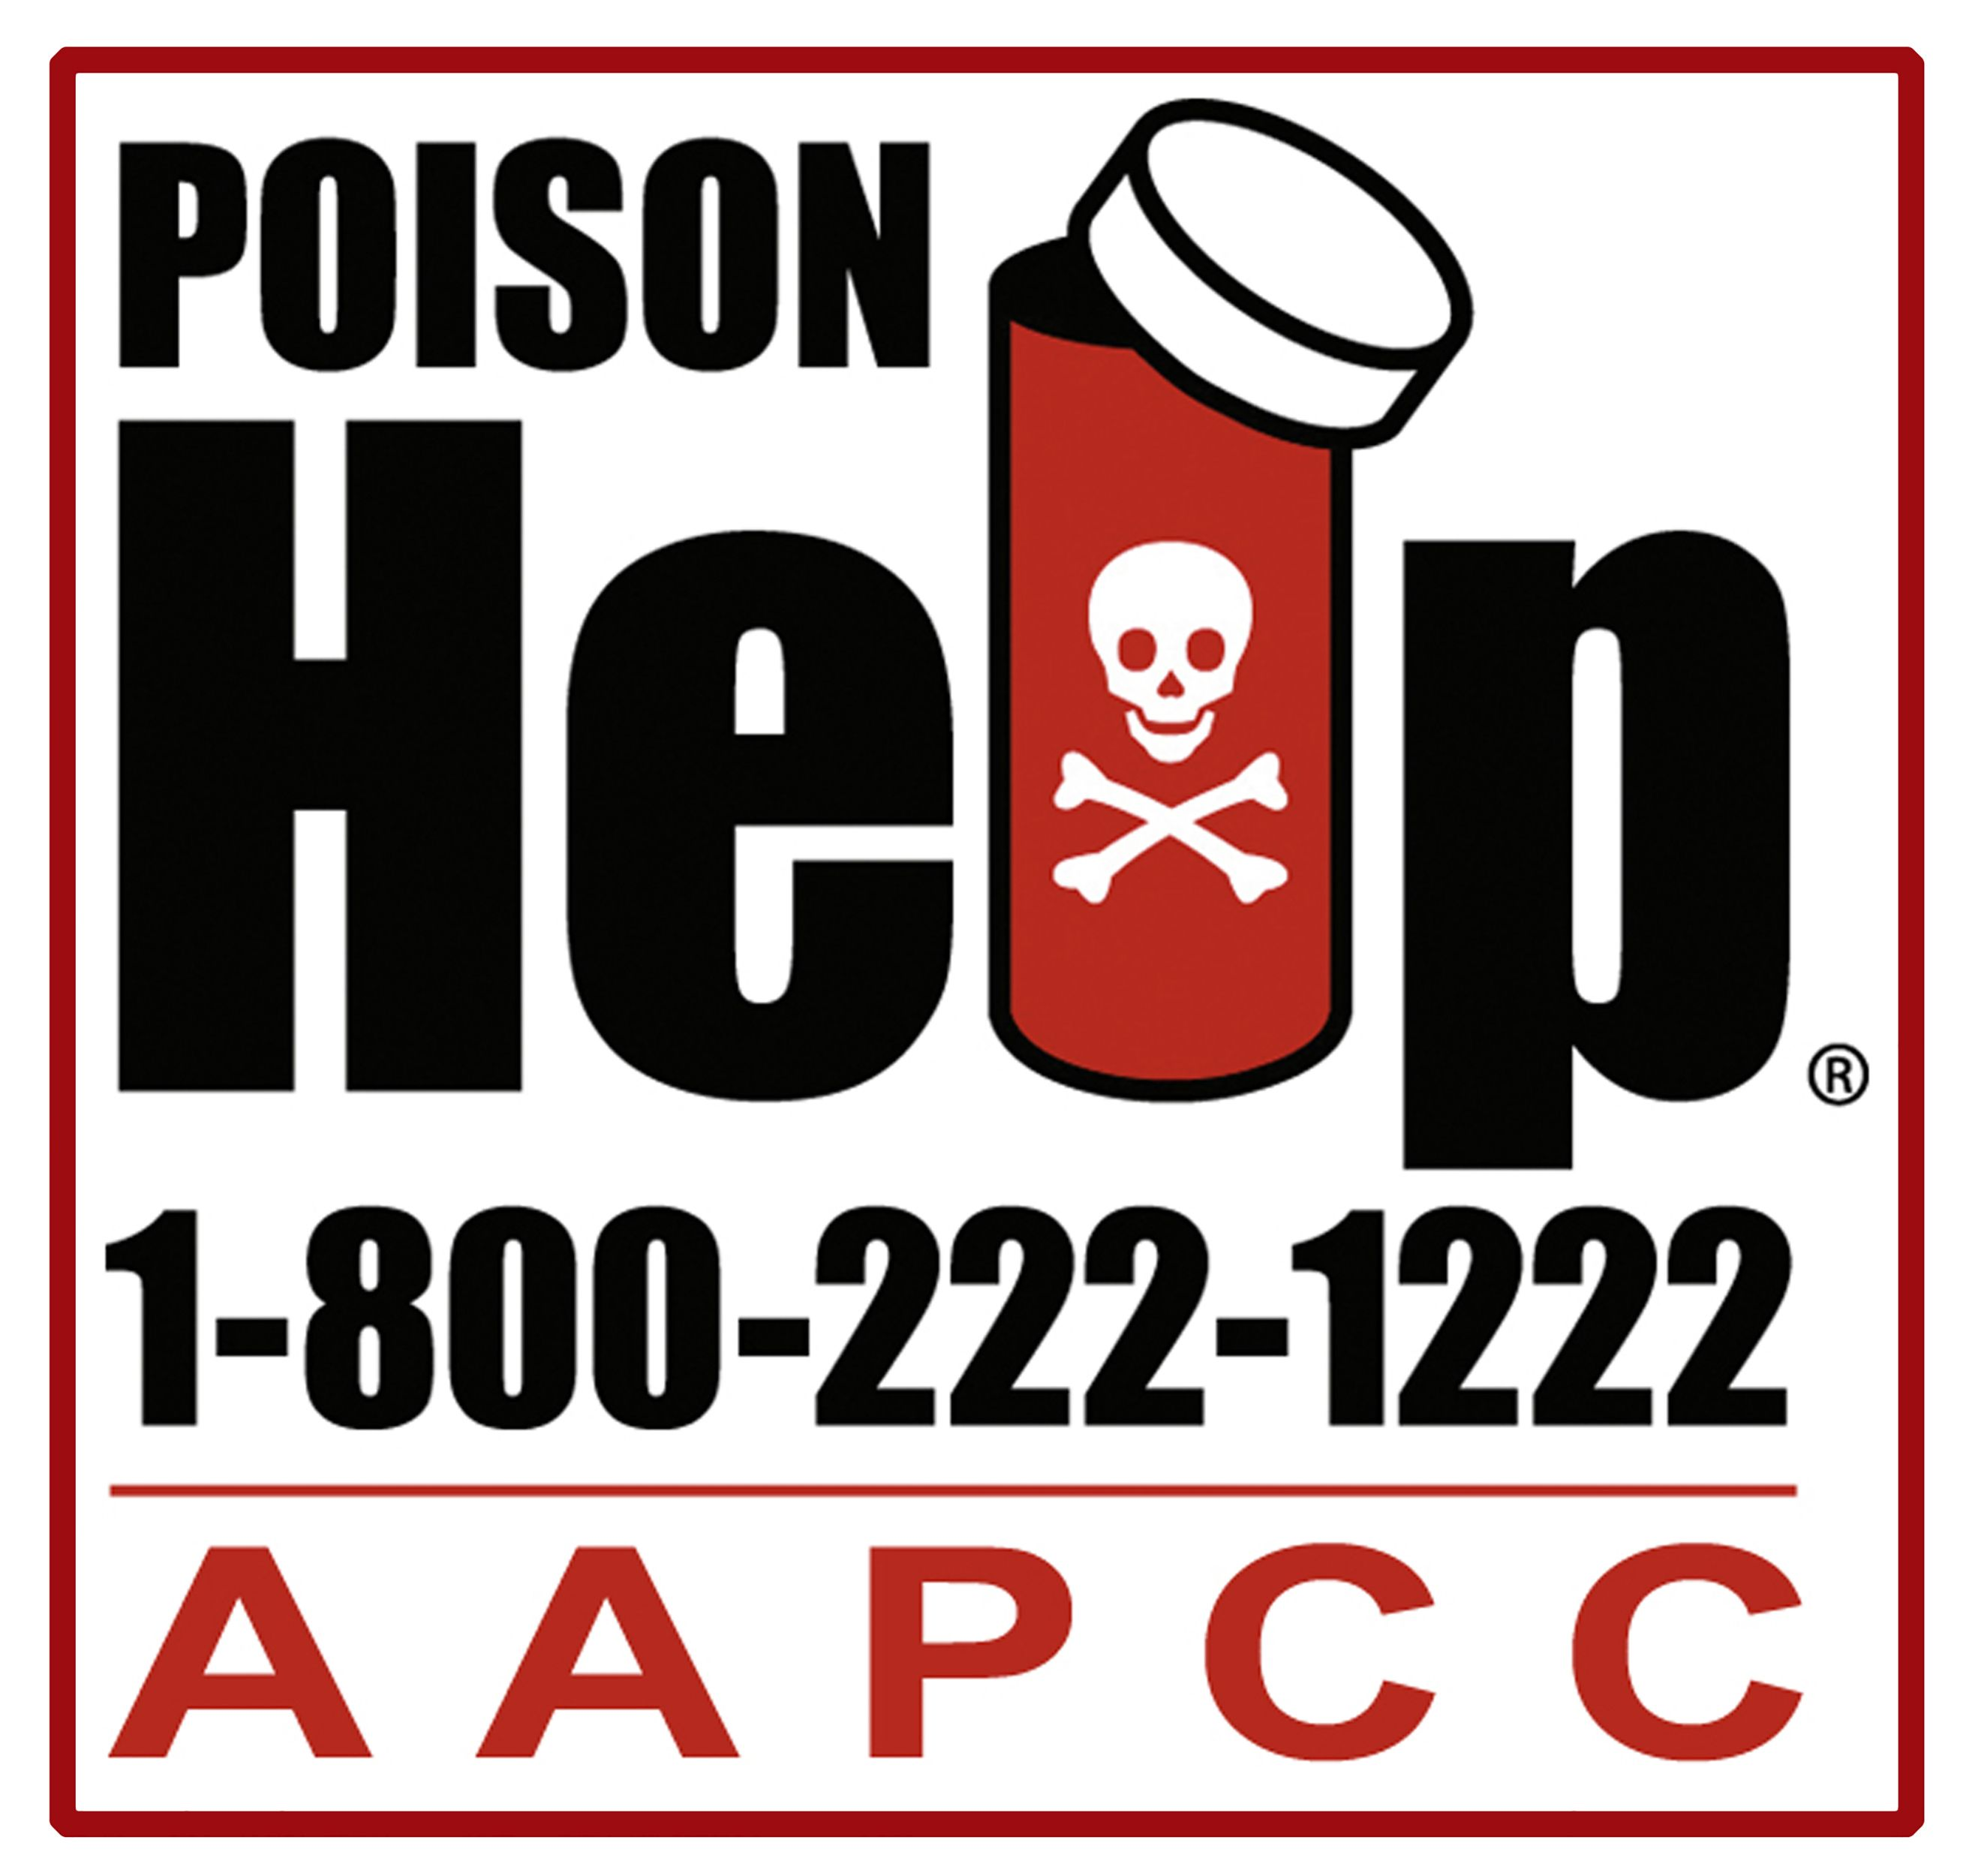 American Association of Poison Control Centers (AAPCC